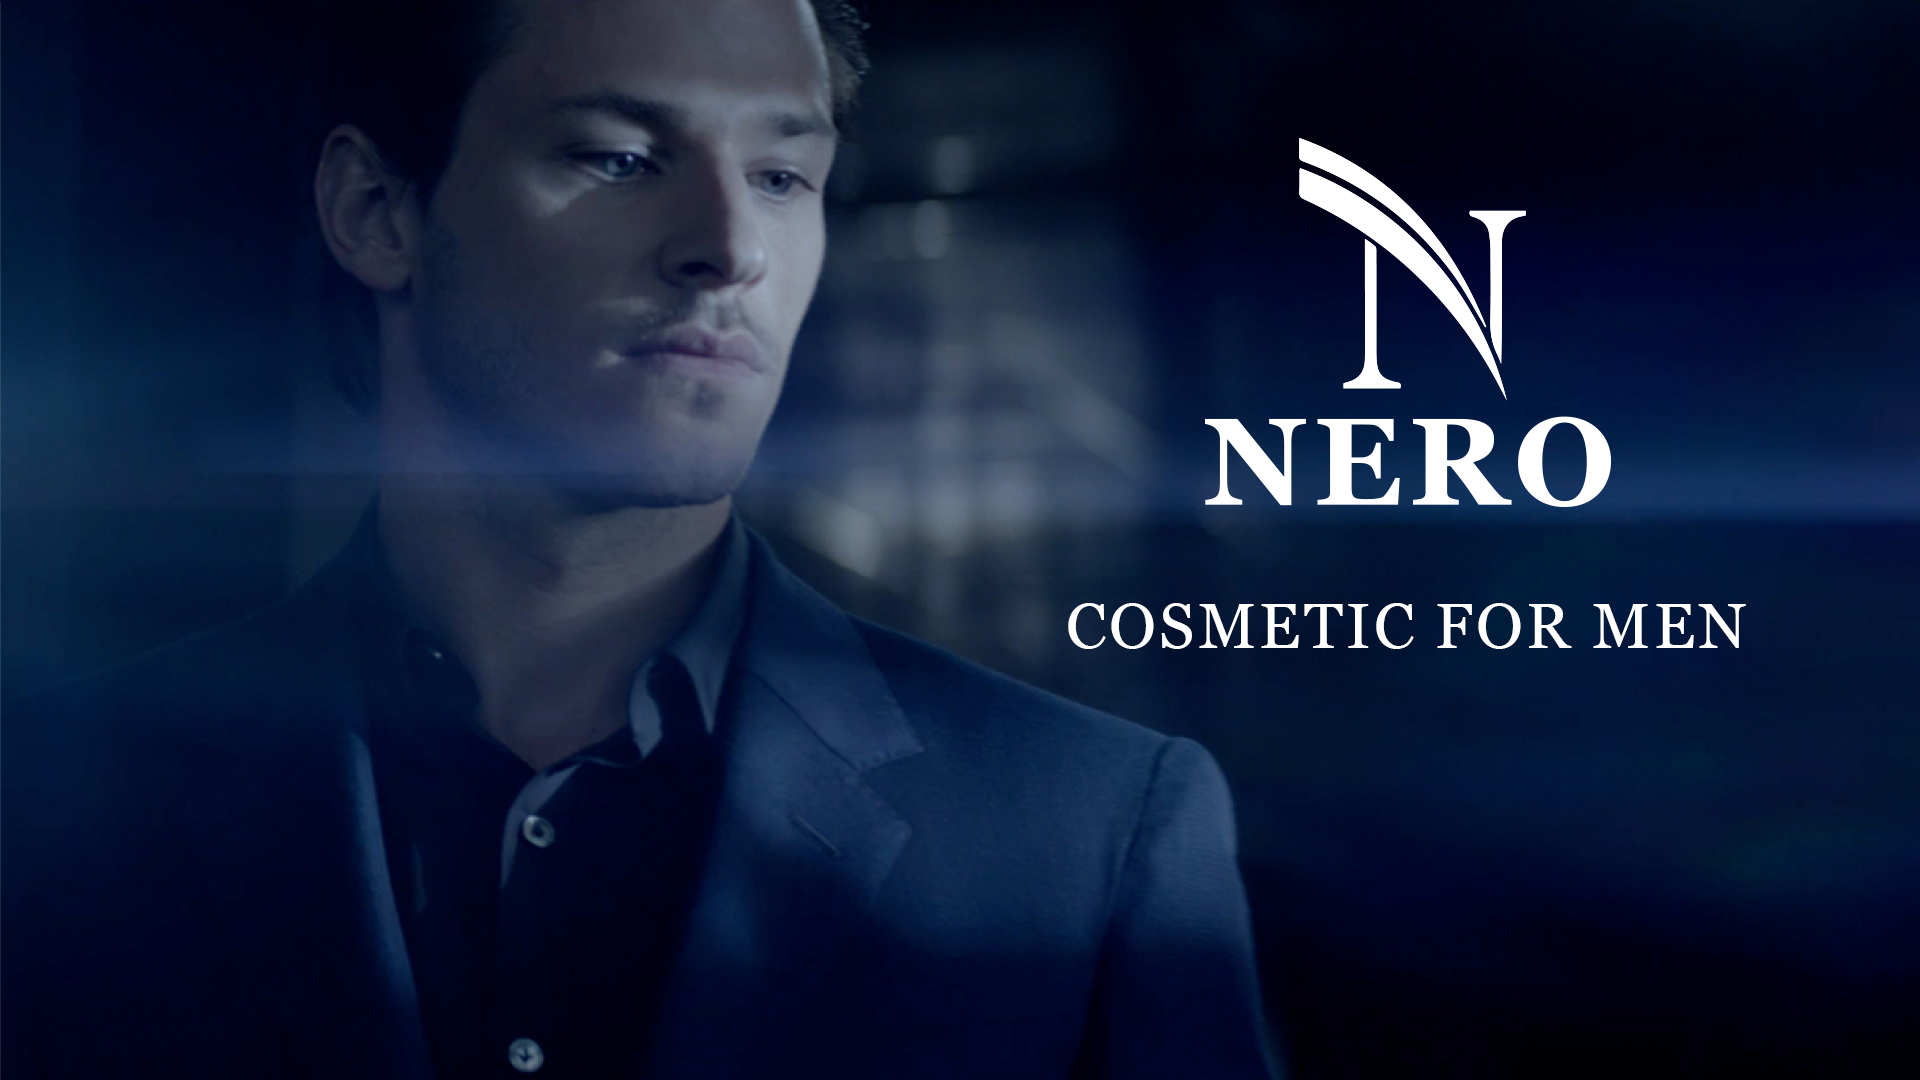 Nero for men